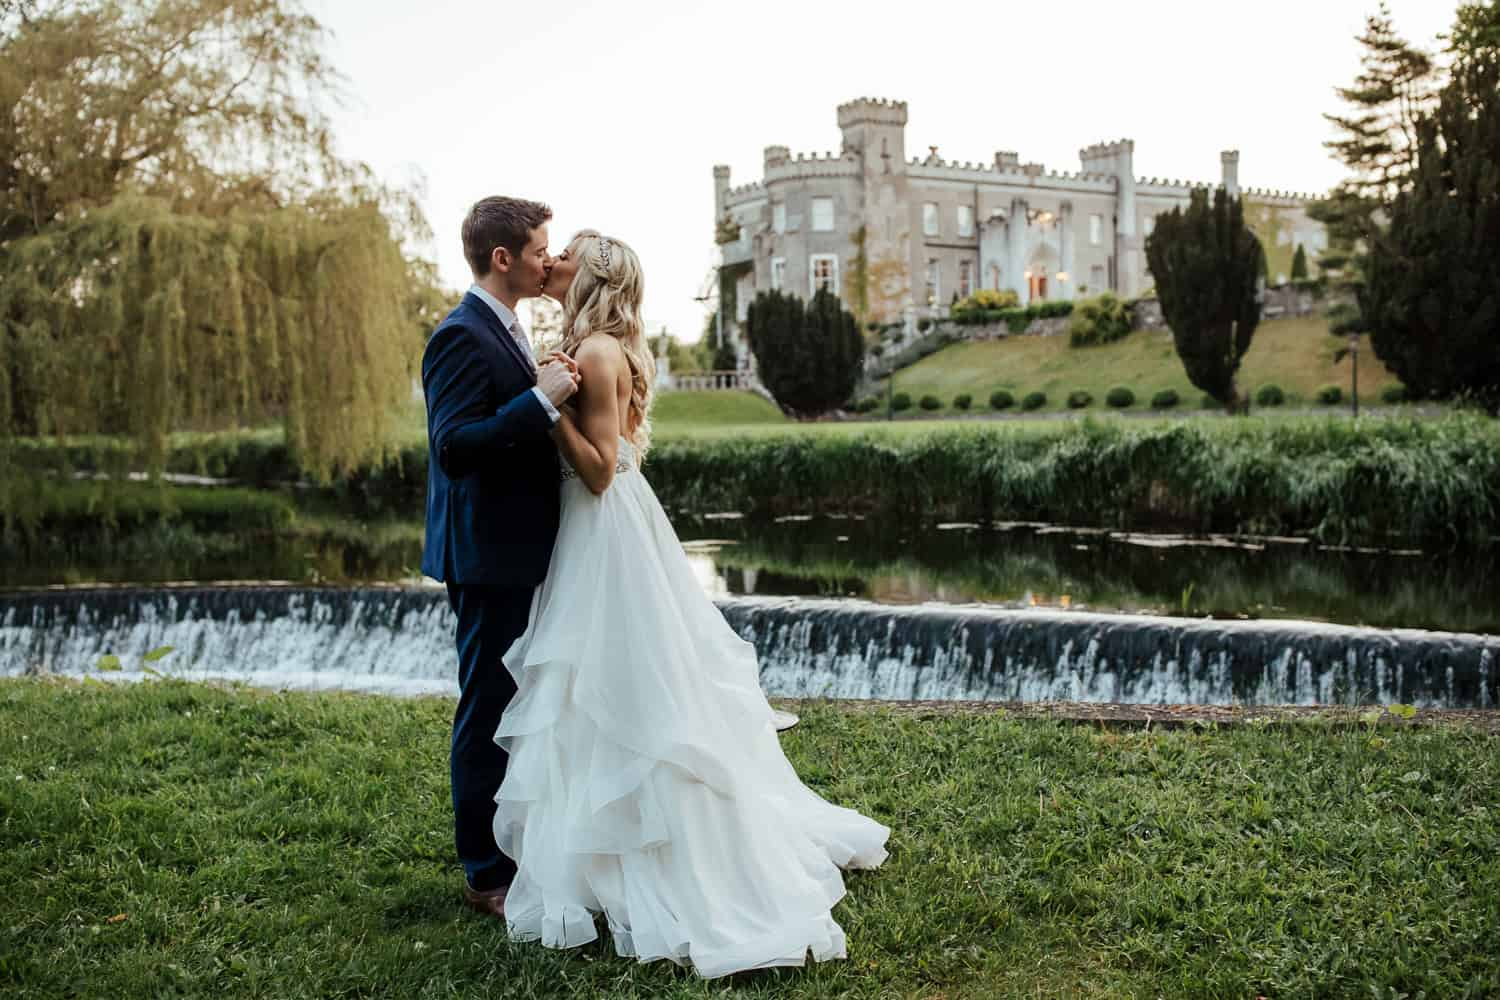 wedding couple in bellingham castle louth sunset wedding photo